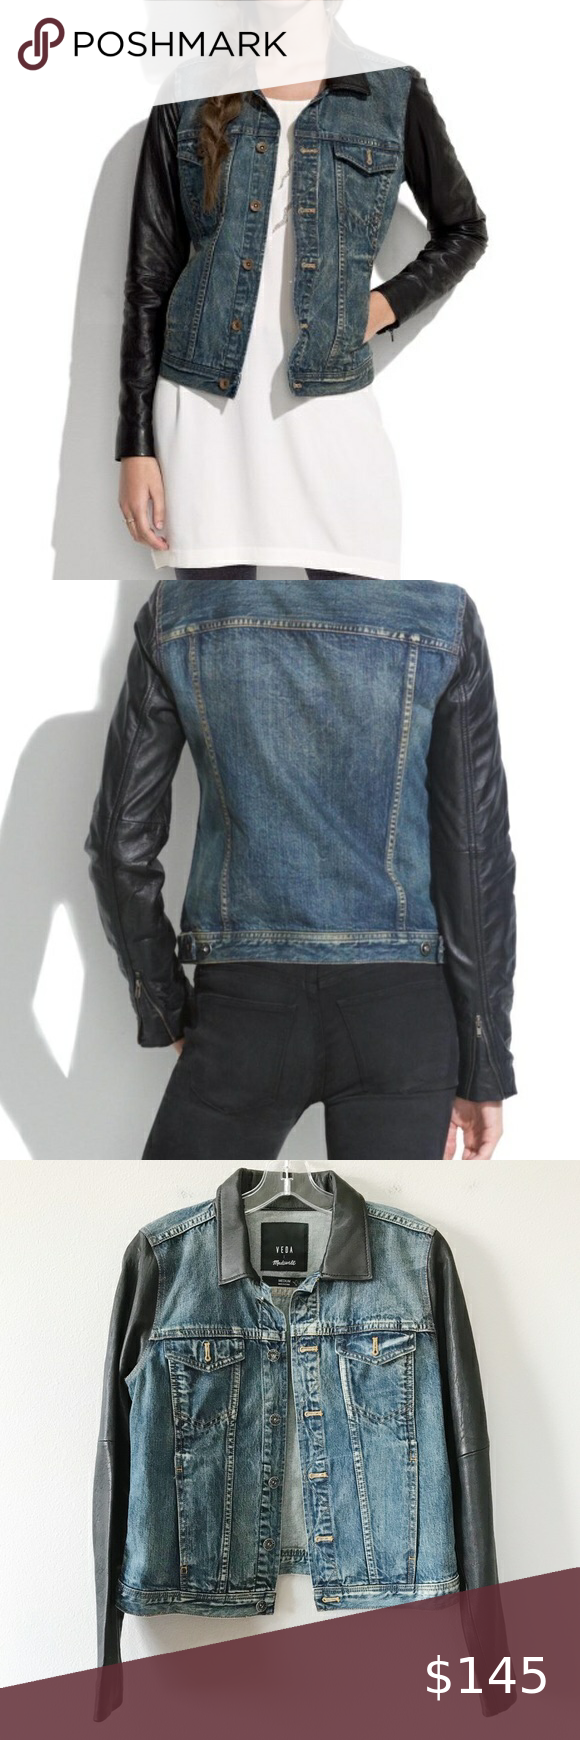 Veda x Madewell Denim Jacket Real Leather Sz M EUC RARE